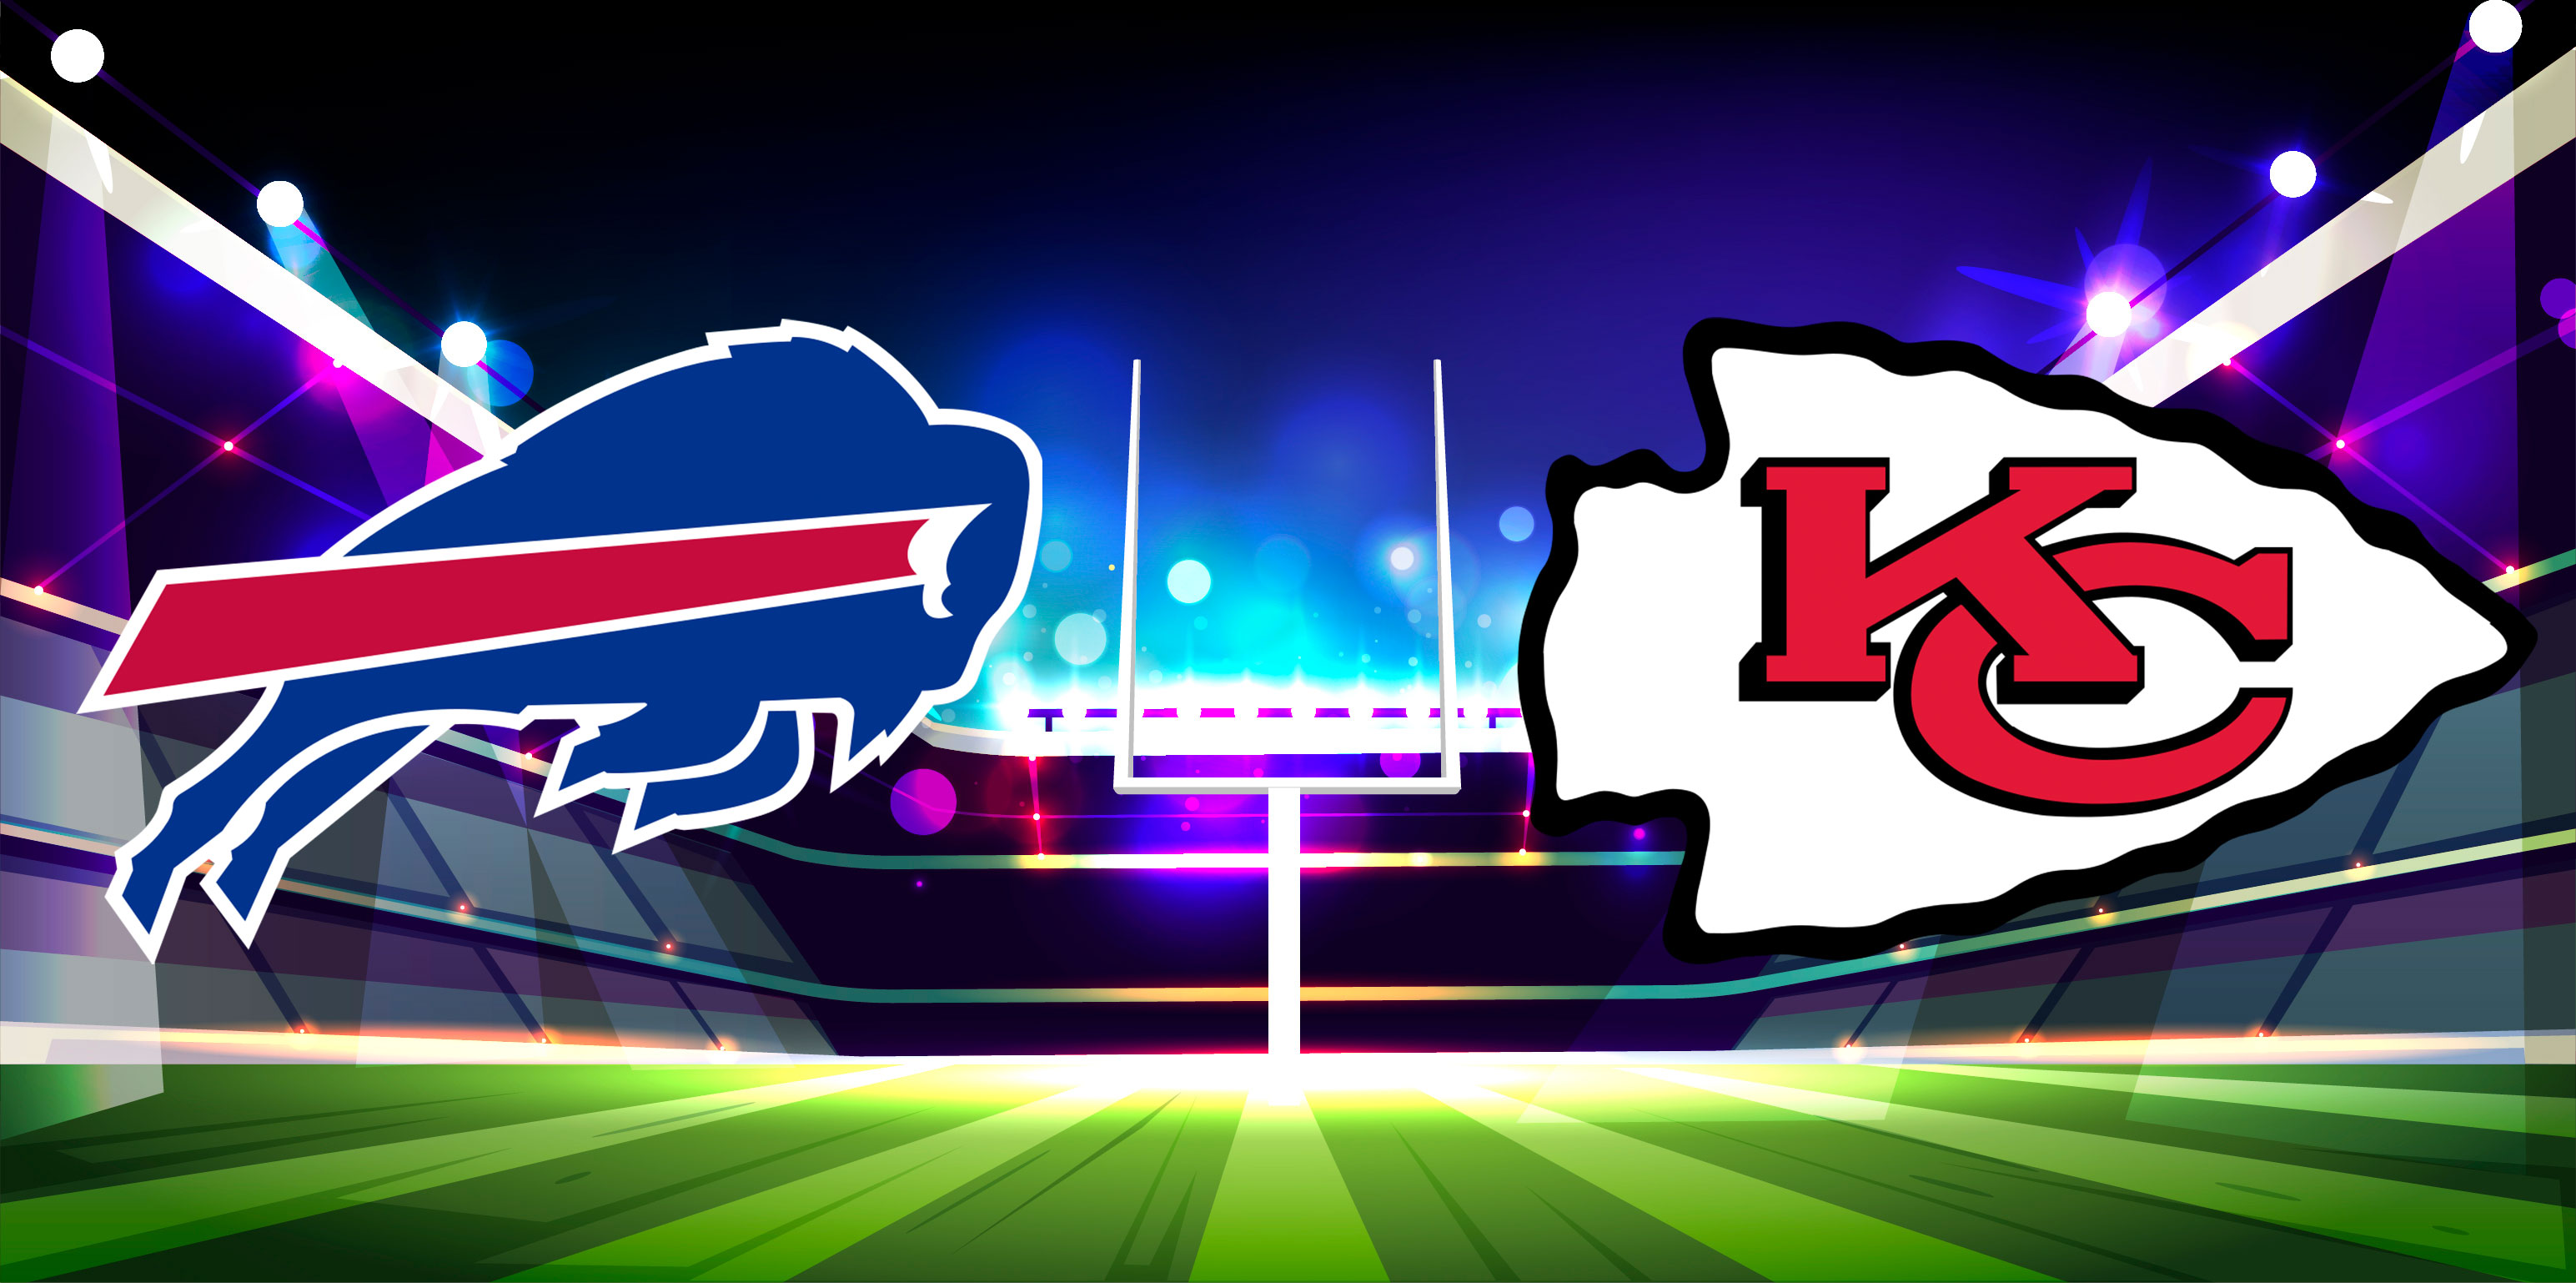 Bills vs Chiefs 2021 AFC Championship Odds & Preview